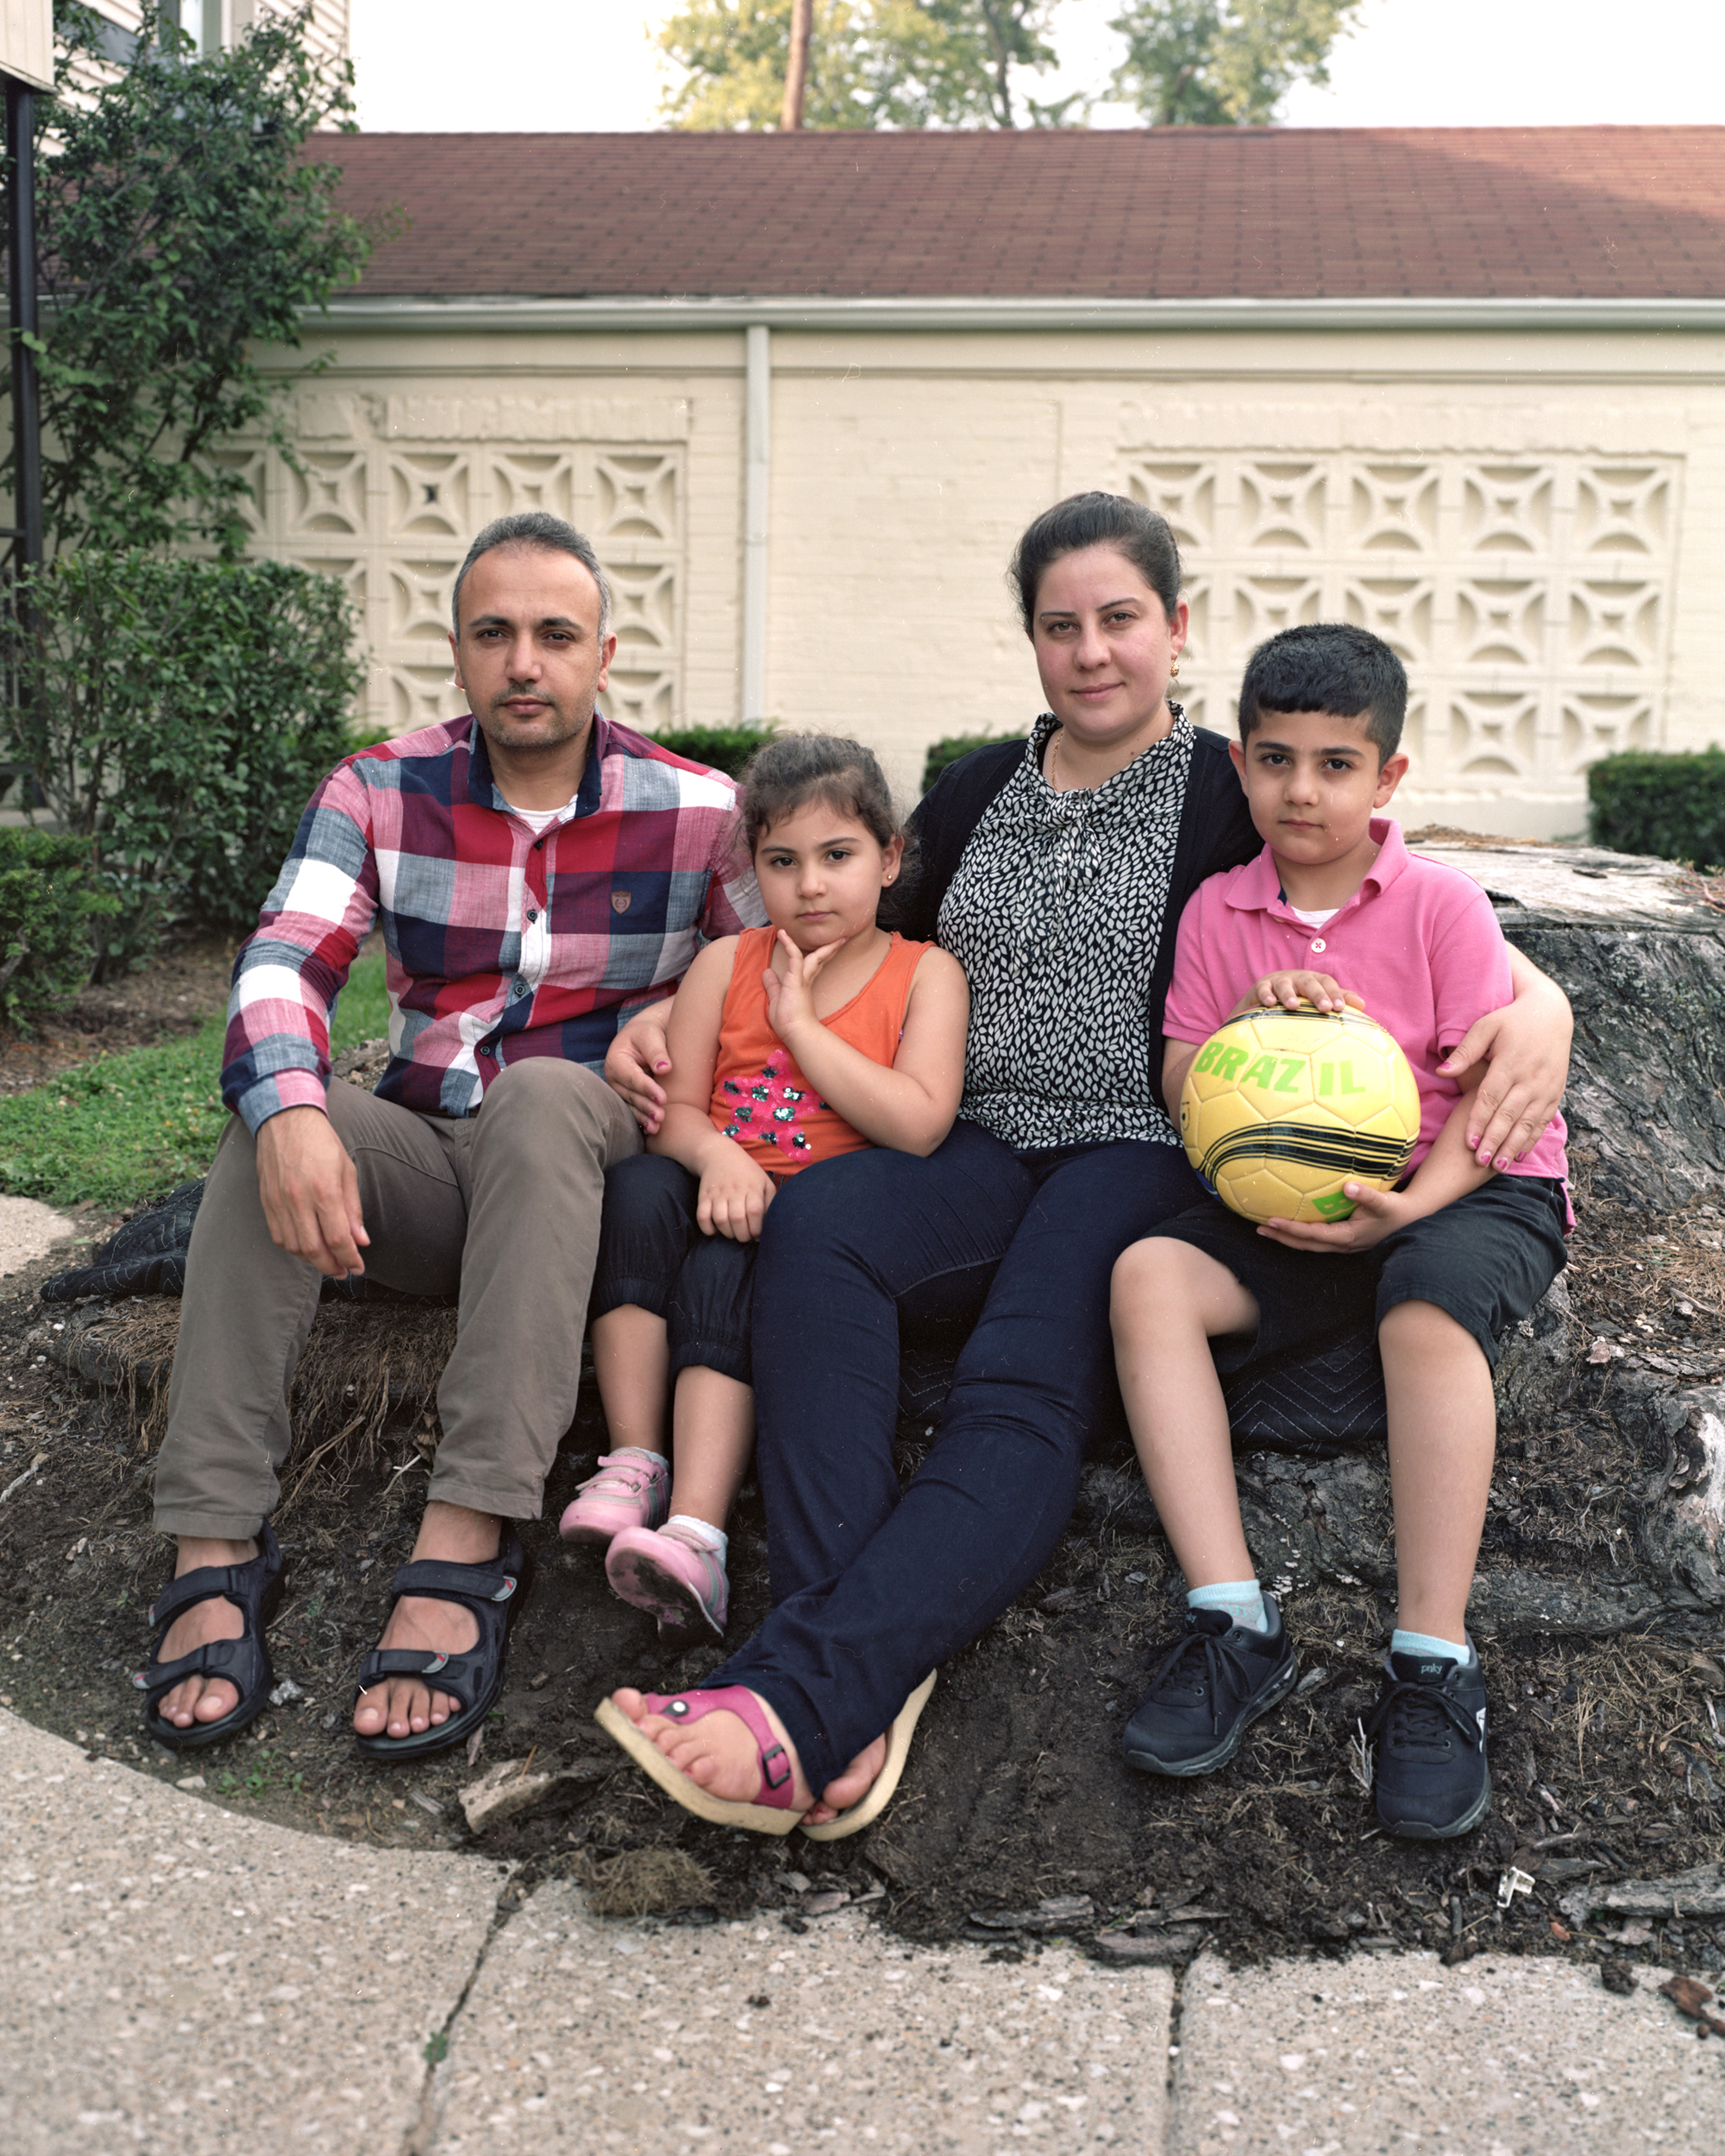 Newly Arrived Family from Syria in Toledo, Ohio (2016)